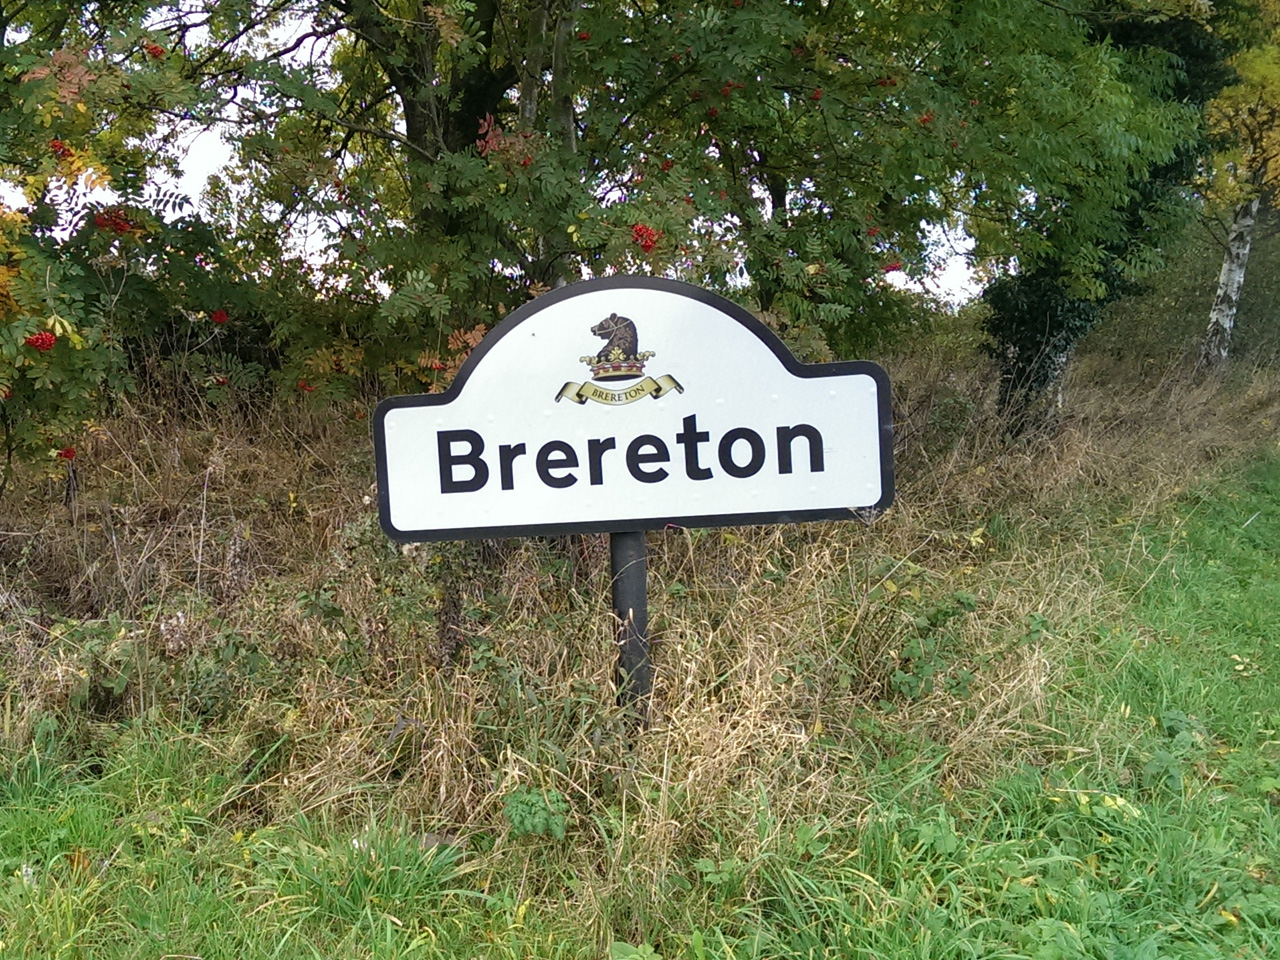 brereton-road-sign-3b